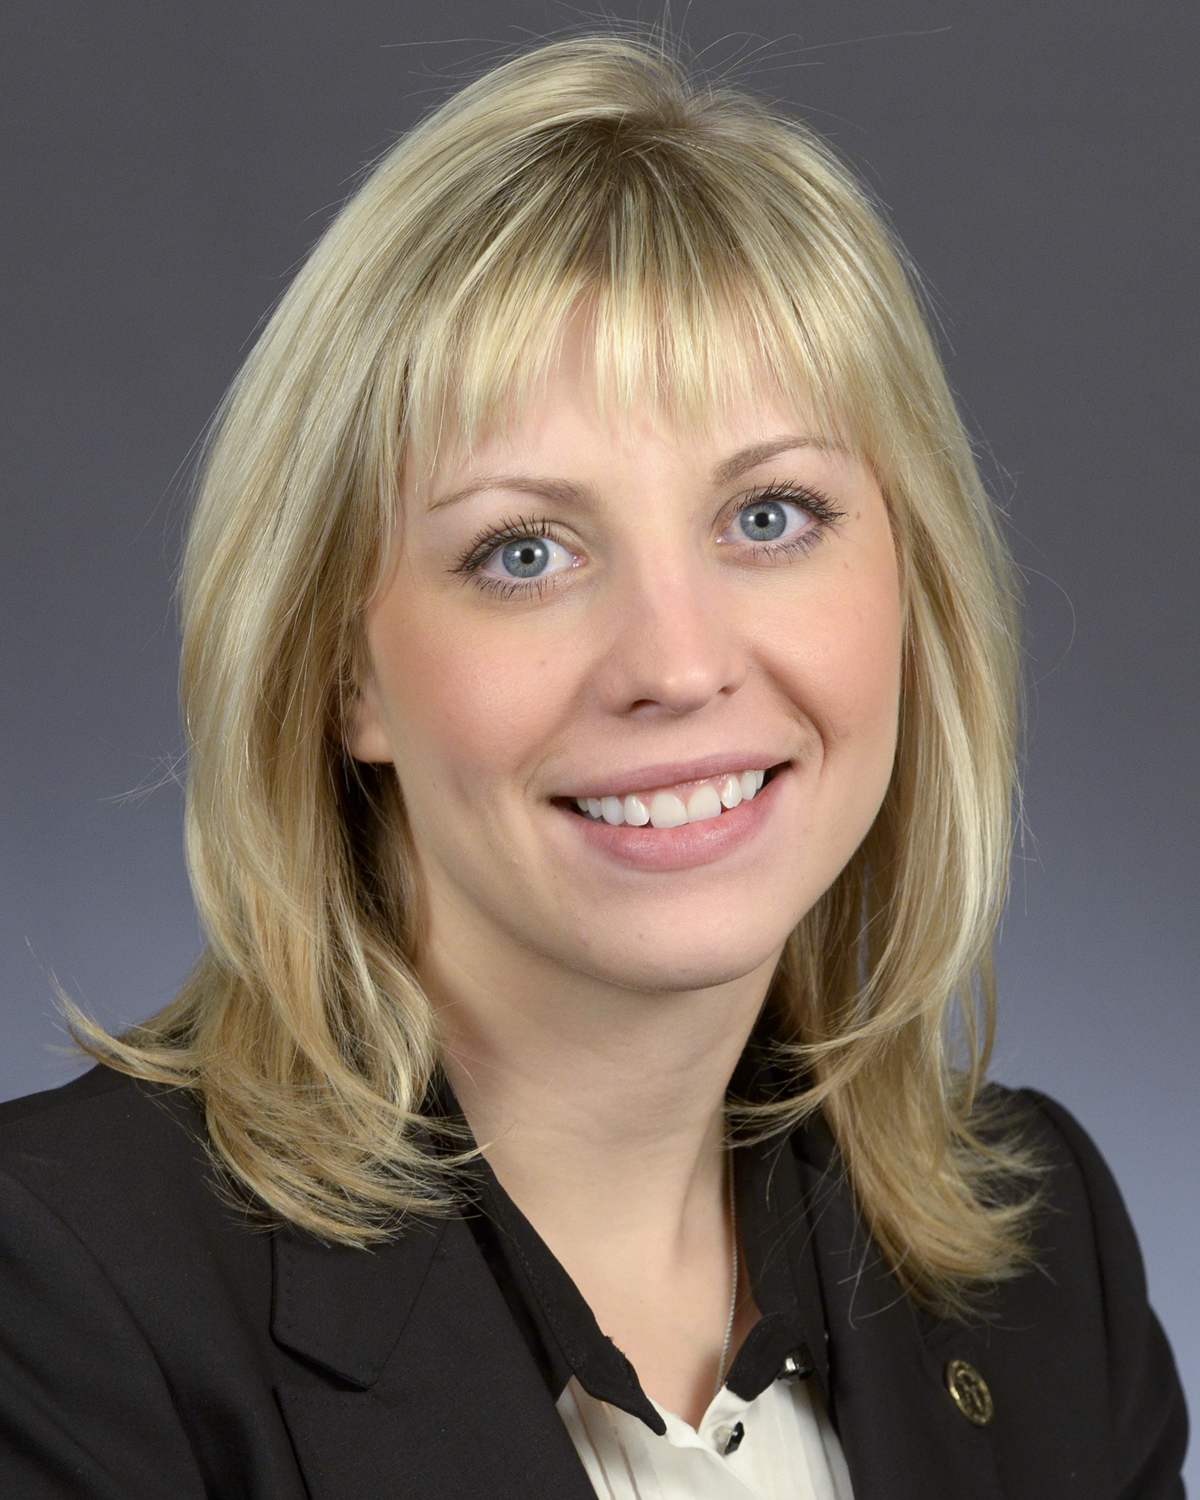 Representative Carly Melin